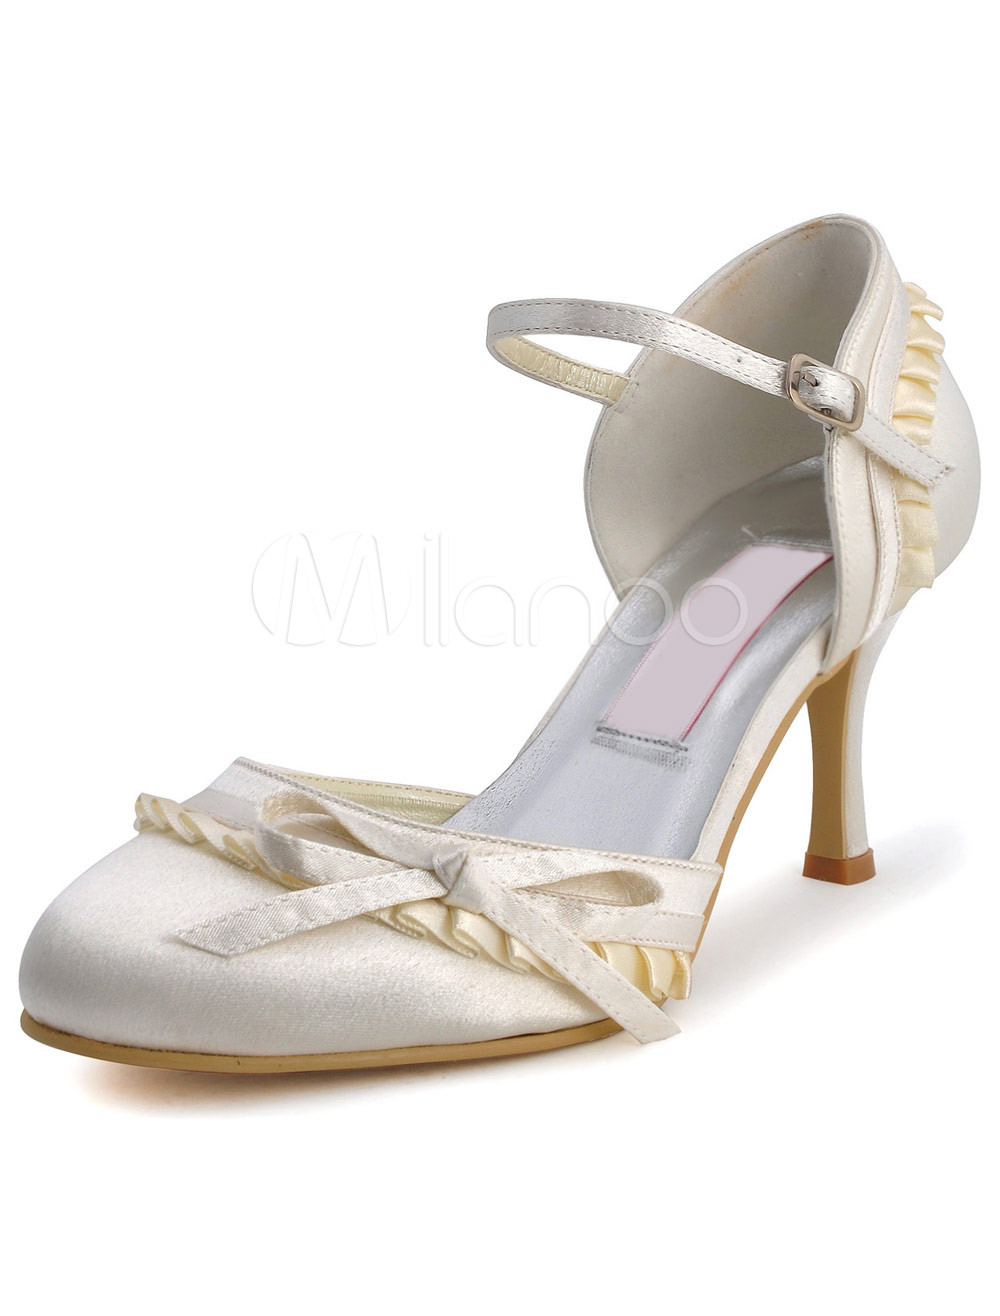 Shop eBay for great deals on Beige Bridal Shoes. You'll find new or used products in Beige Bridal Shoes on eBay. Free shipping on selected items. Skip to main content. eBay: Sleek beige/ nude satin upper with floral accent at vamp. Leather lining. Lightly cushioned leather sole. Wrapped heel. Heel is .